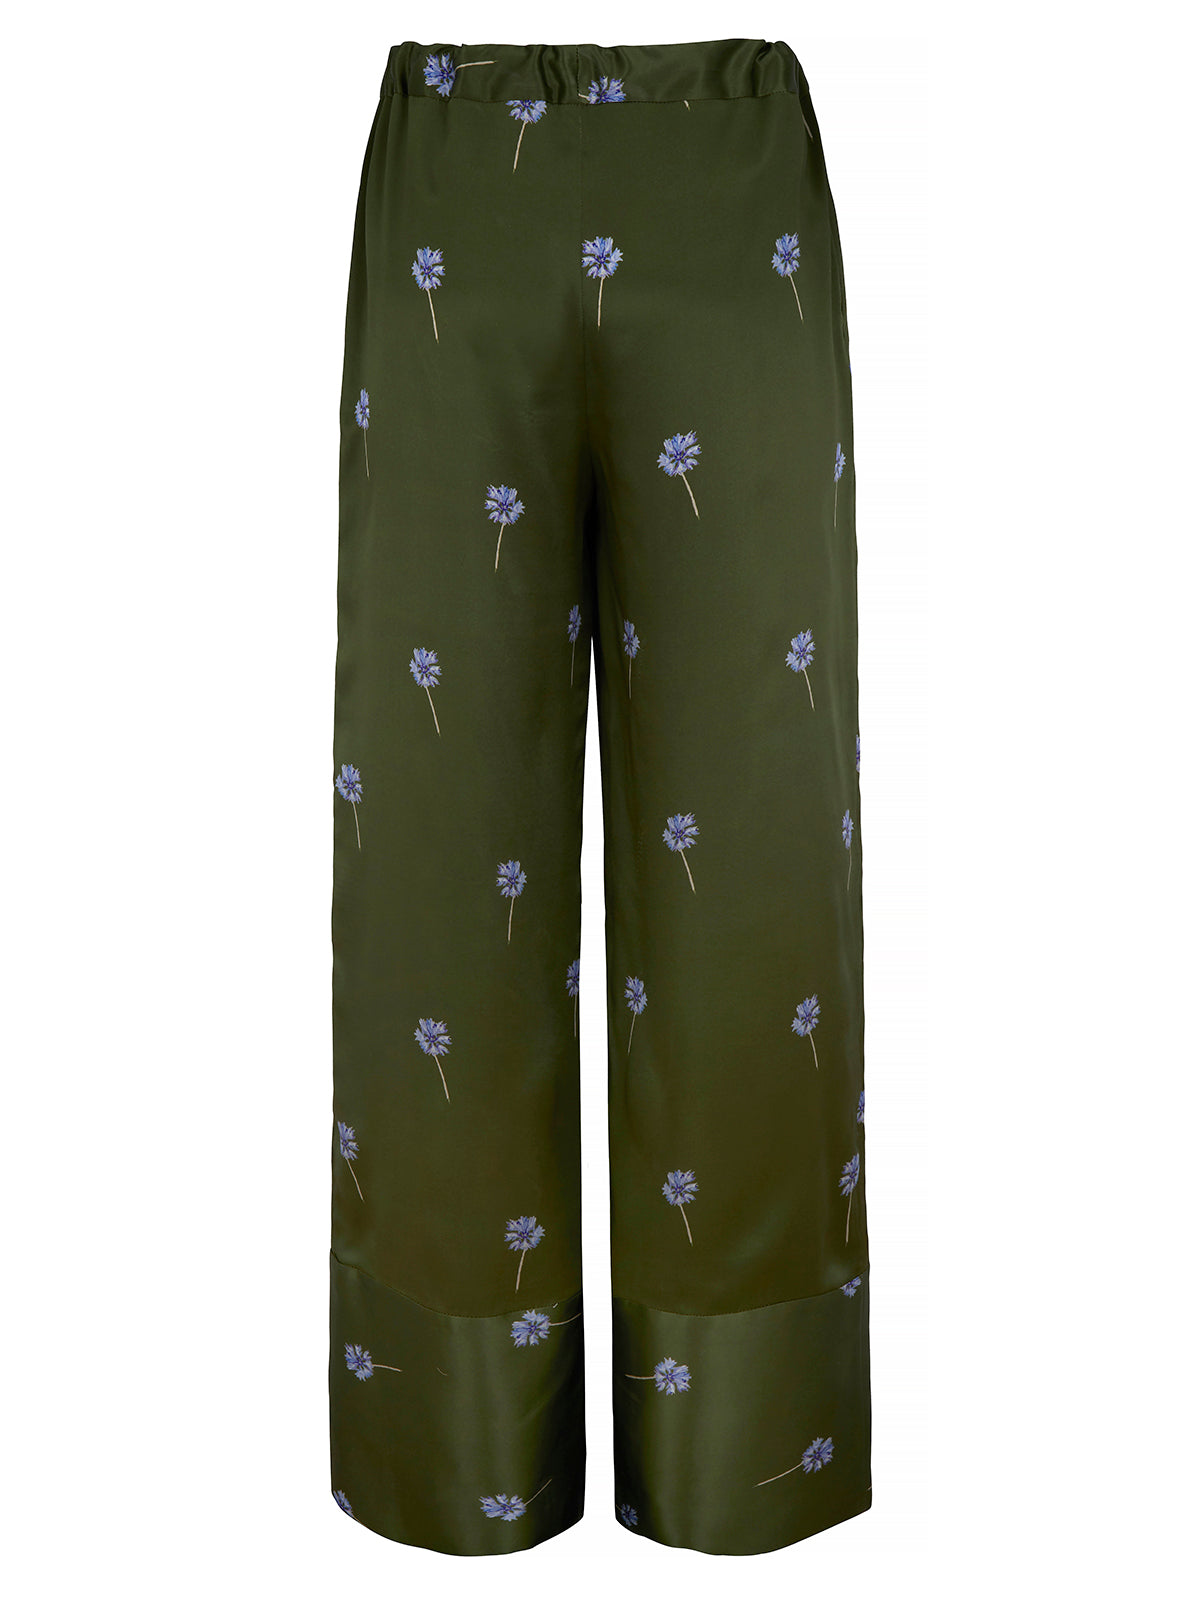 Deborah Lyons Dita Duo Silk Pyjamas_Bottoms_Front